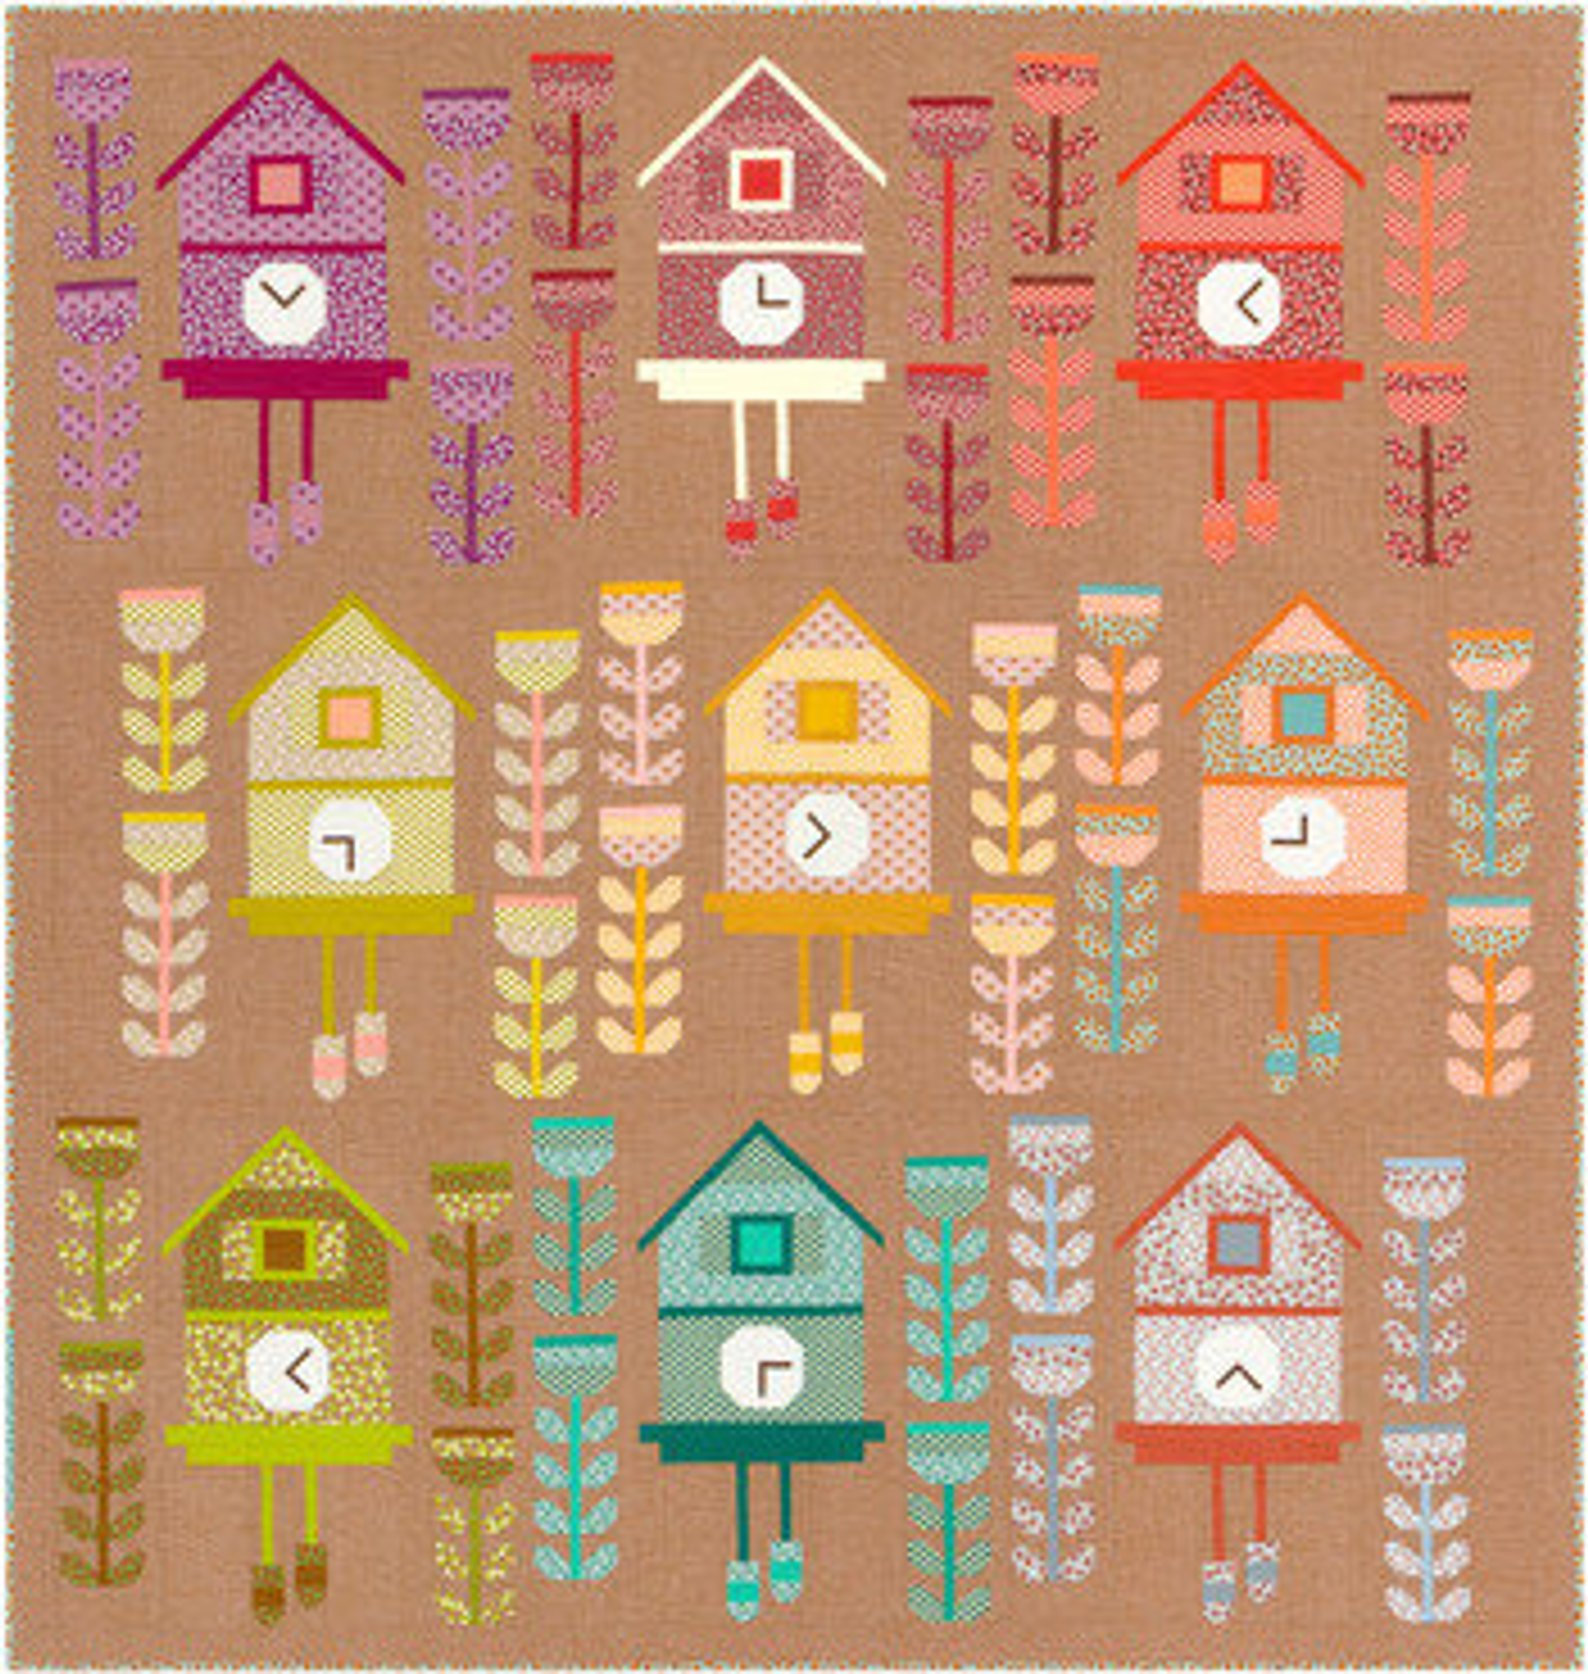 Robert Kaufman Cuckoo QUILT KIT Featuring Berry Season Fabric by Elizabeth Hartman - In stock and ships today!